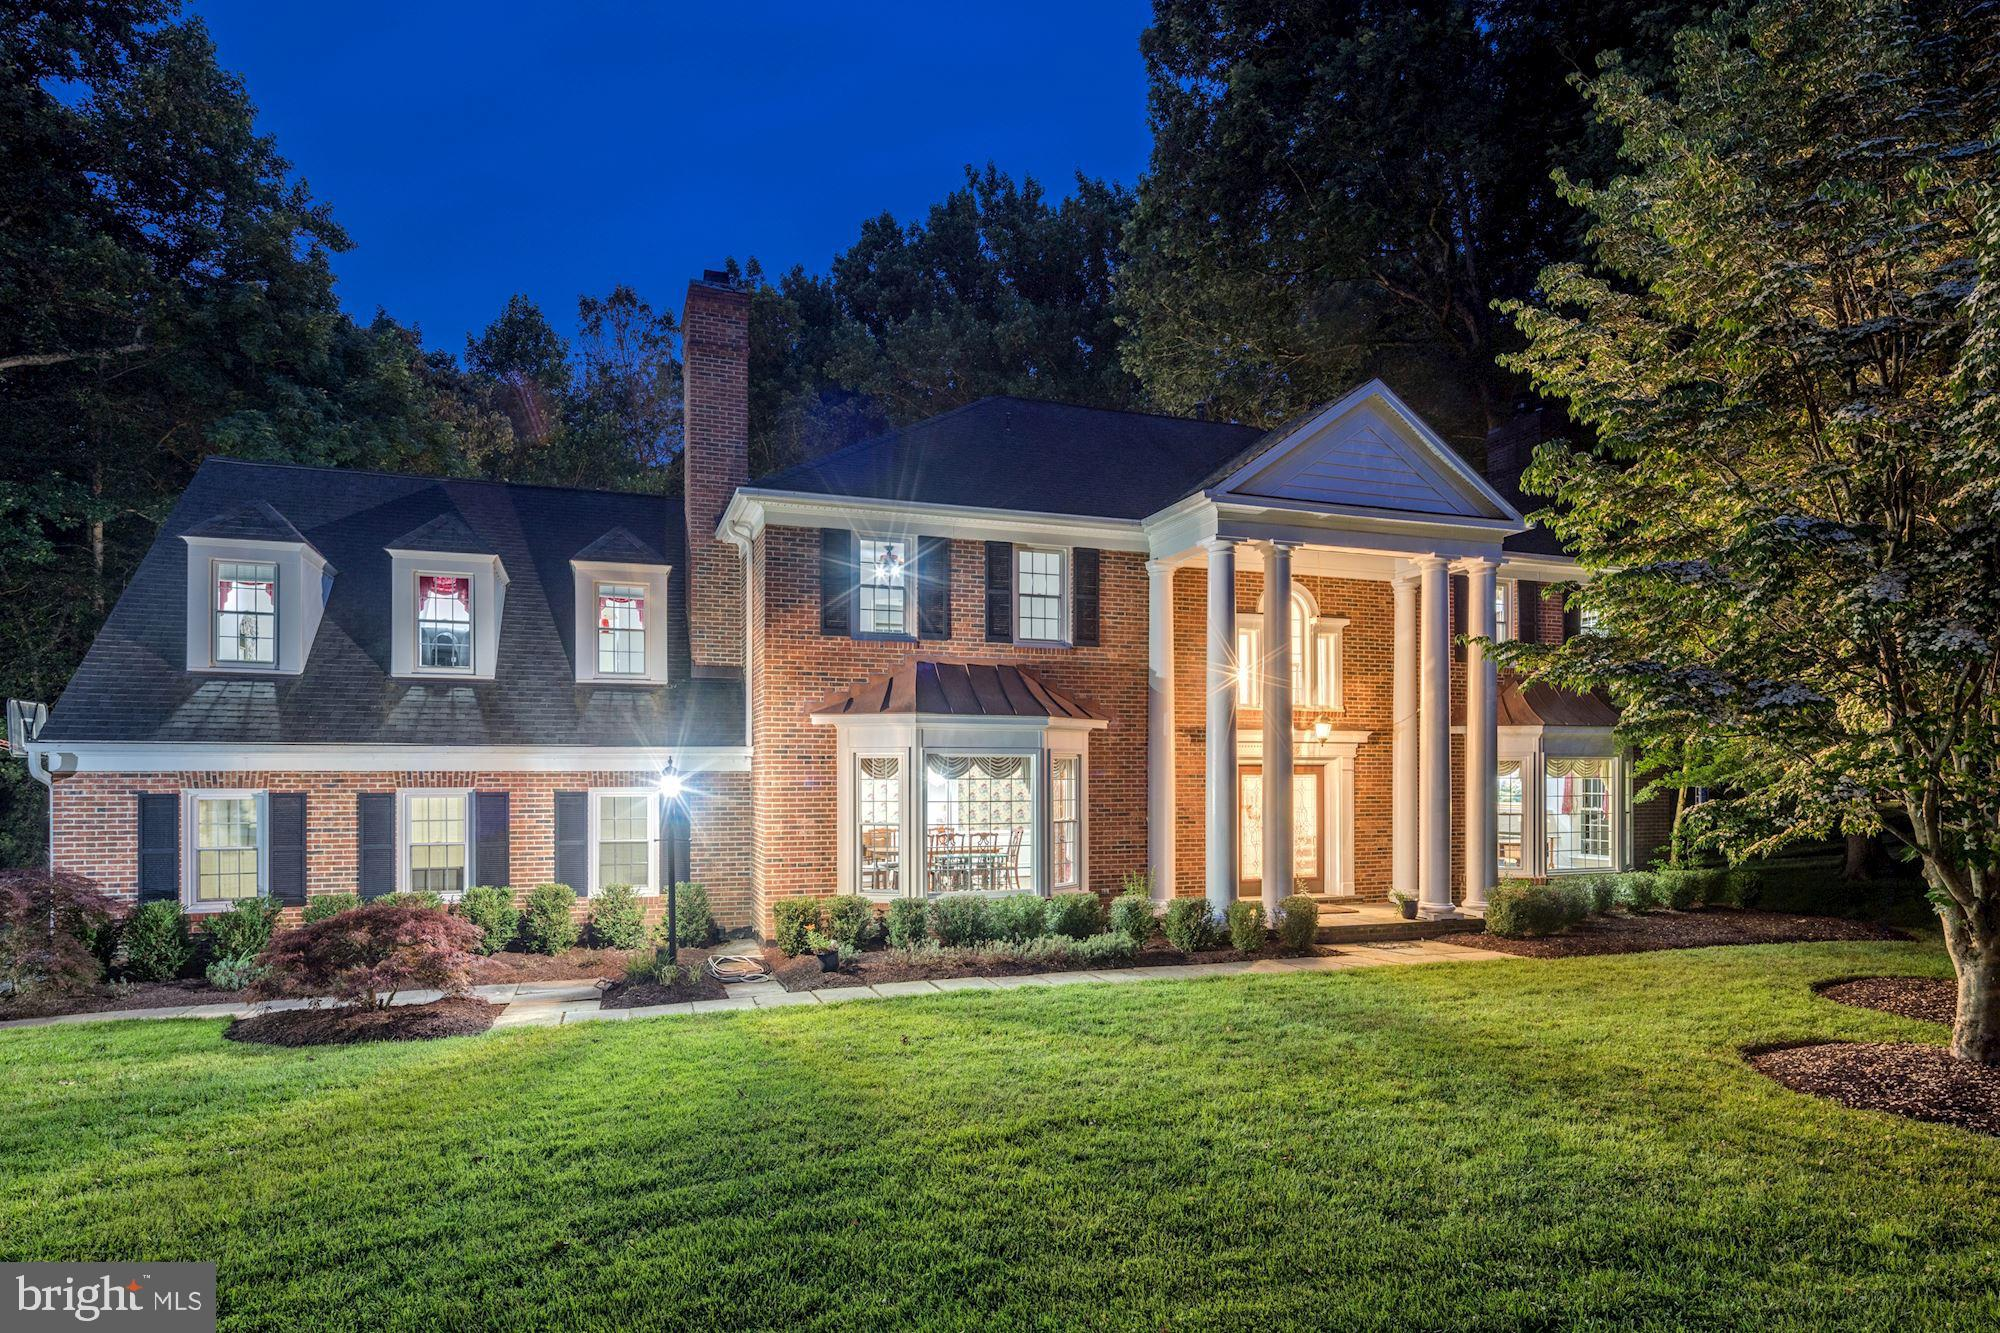 12009 WETHERFIELD LANE, POTOMAC, MD 20854